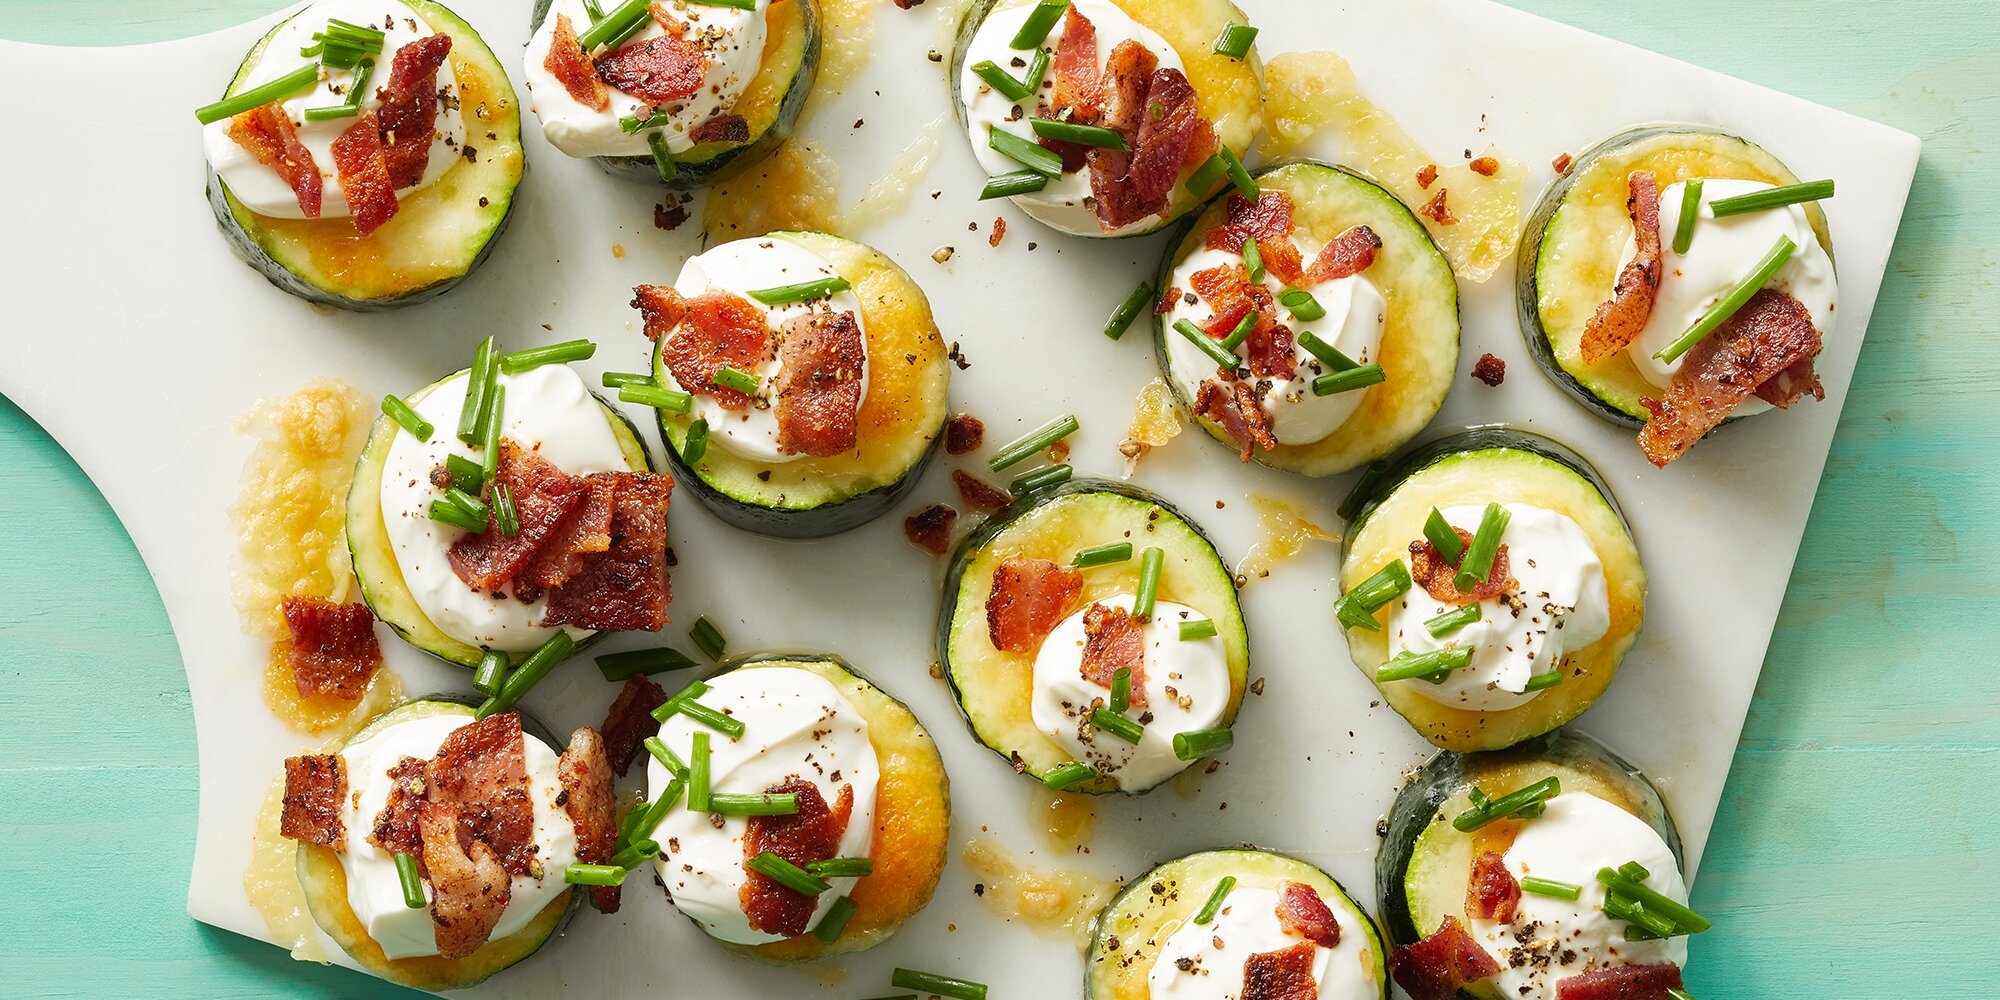 Loaded Zucchini Bites